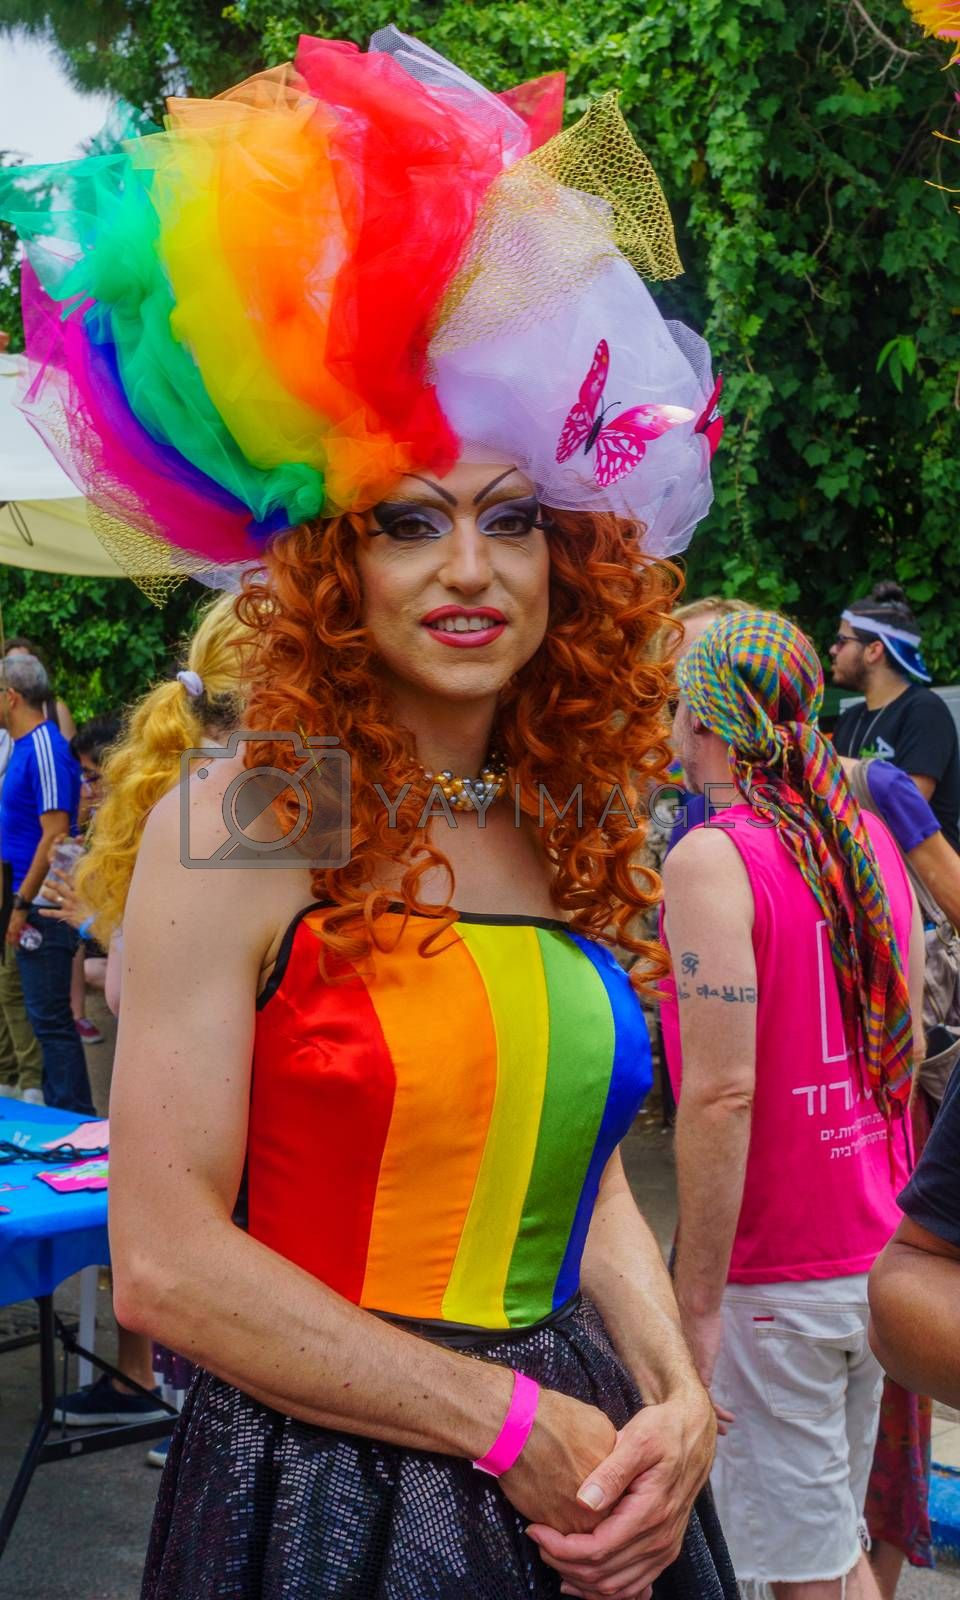 Haifa, Israel - June 28, 2019: Portrait of a participant in the annual pride parade of the LGBT community, in the streets of Haifa, Israel